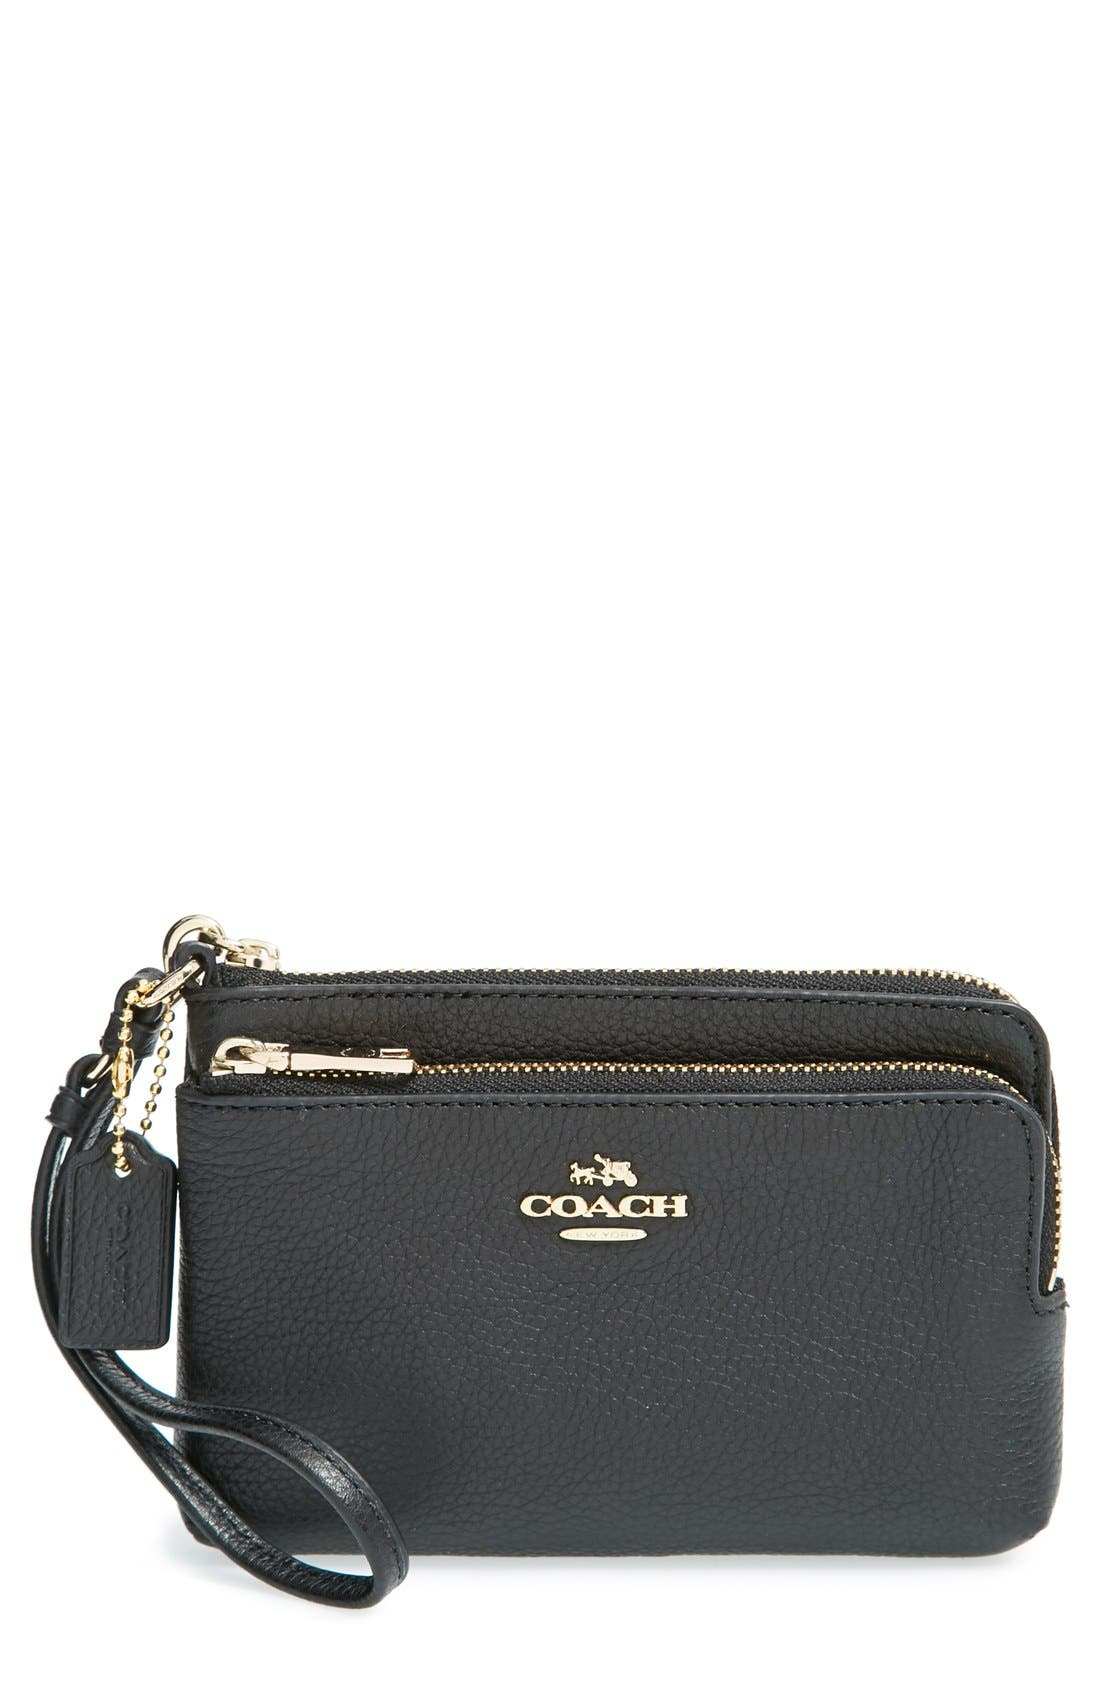 COACH 'Madison' Double Zip Leather Wallet, Main, color, 001